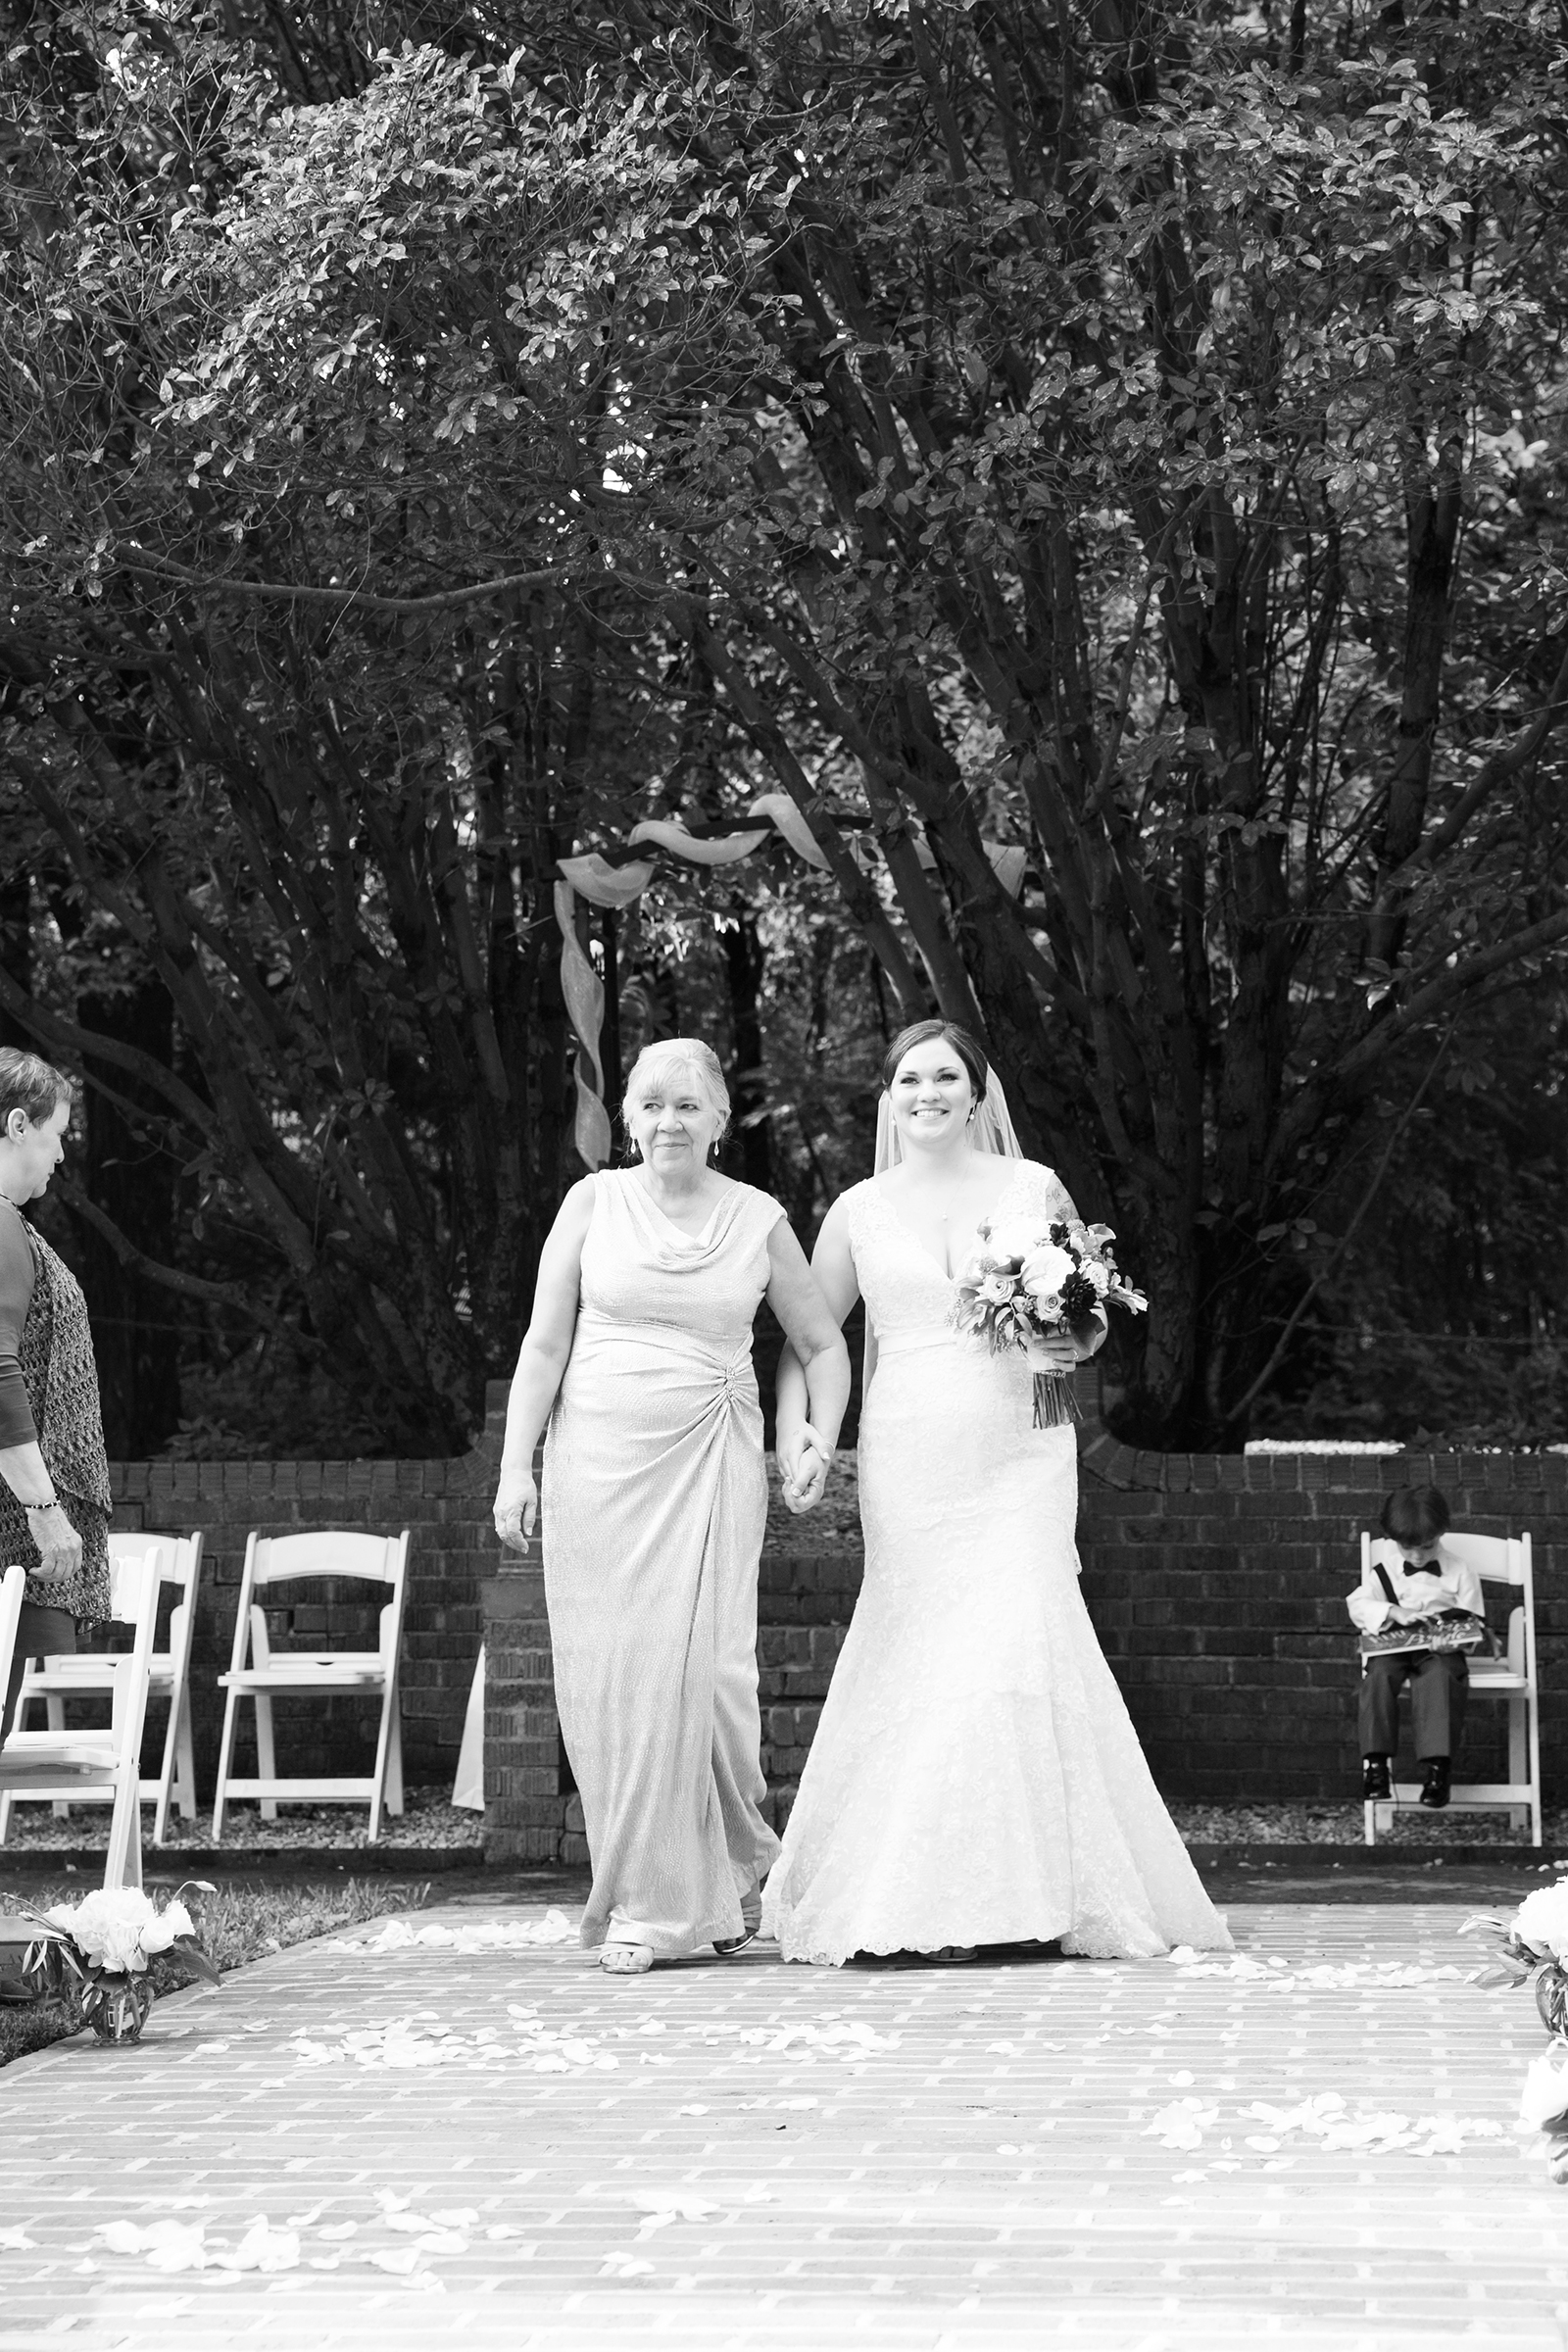 Abby  Ryans Wedding at Mankin Mansion - Image Property of www.j-dphoto.com